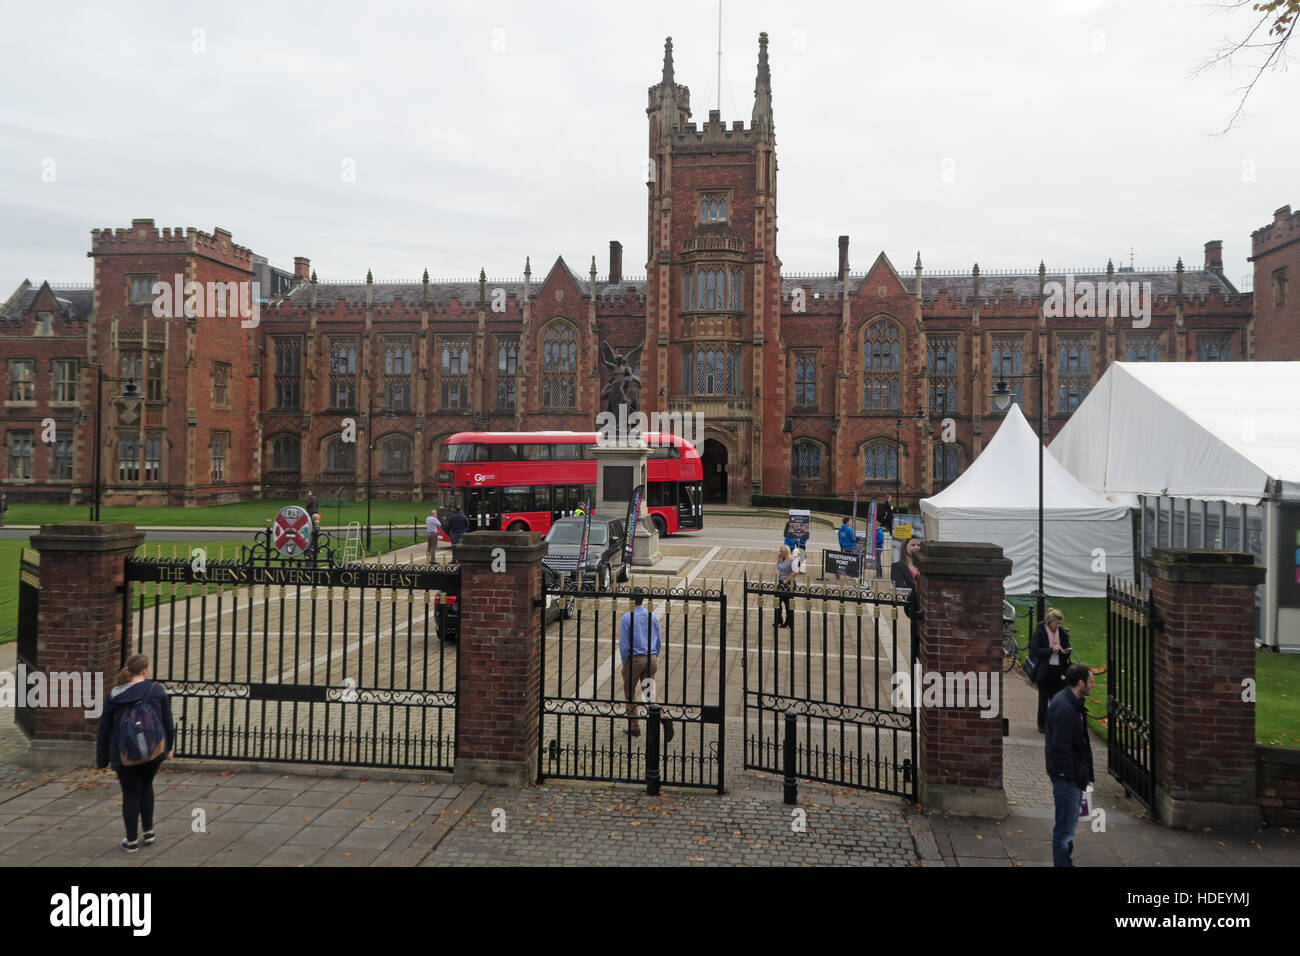 NI,Northern Ireland,city,centre,Education,learn,learning,Queen,old,historic,building,architecture,research,institution,institutions,QUB,Queens College,Academic,BT7 1NN,main,building,architecture,red,gate,tent,tents,marque,gates,University Of Belfast,GoTonySmith,@HotpixUK,Tony,Smith,UK,GB,Great,Britain,United,Kingdom,Irish,British,Ireland,problem,with,problem with,issue with,NI,Northern,Northern Ireland,Uni,Belfast,City,Centre,edication,student,students,union,West,Beal,feirste,tour,tourism,tourists,urban,six,counties,6,backdrop,county,Antrim,Universitas Reginae Belfastiae,Academia,higher,hybrid,diesel-electric,double-decker,doubledecker,double,decker,Wrightbus,Buy Pictures of,Buy Images Of,Images of,Stock Images,Tony Smith,United Kingdom,Great Britain,British Isles,Higher Education,operated in London,Heatherwick Studio,rear open platform